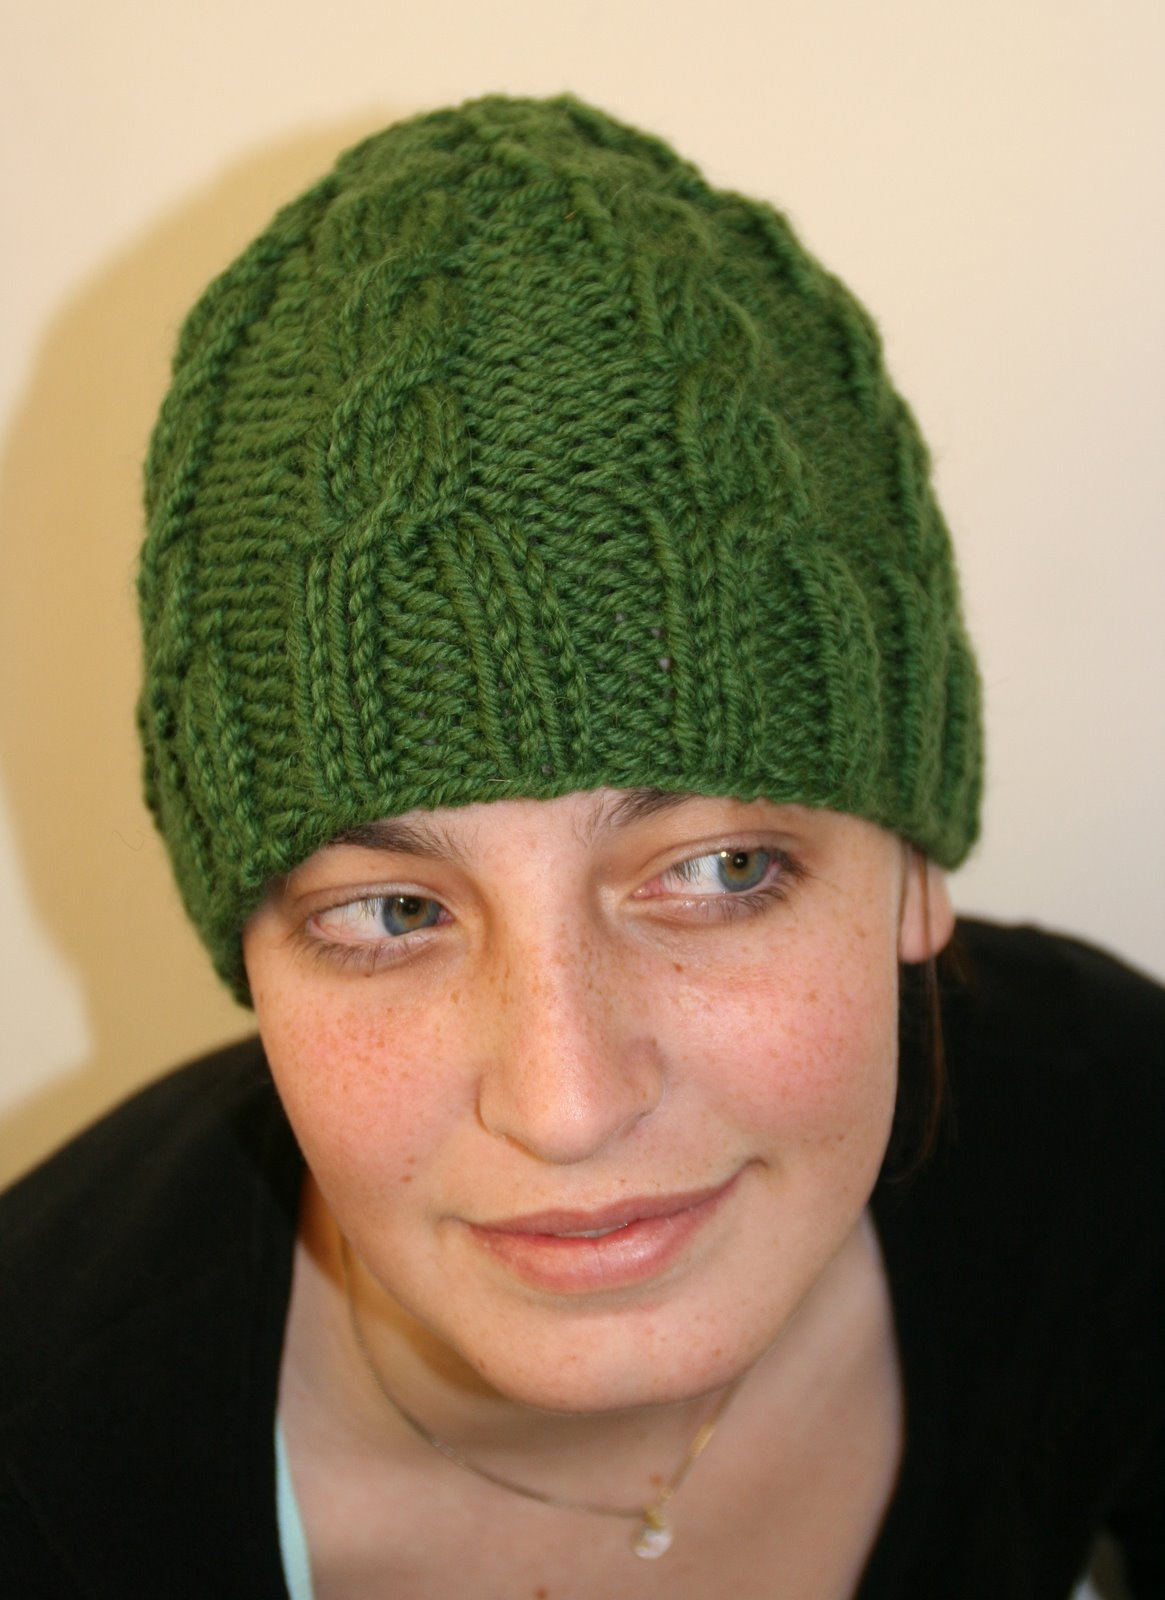 Knitting Patterns Hats : Knitting Patterns Free: new knit hat